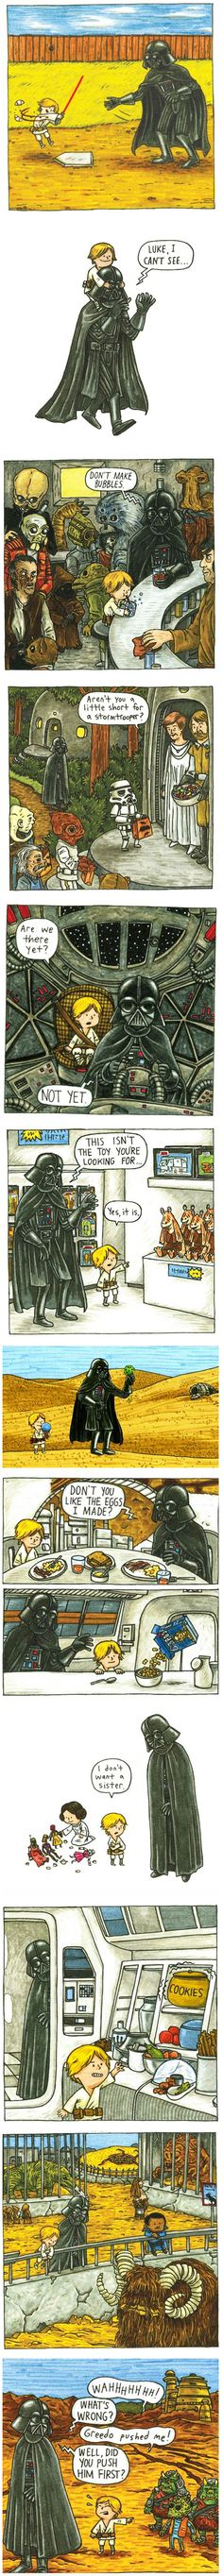 Awww, Vader could have been such a good Dad.